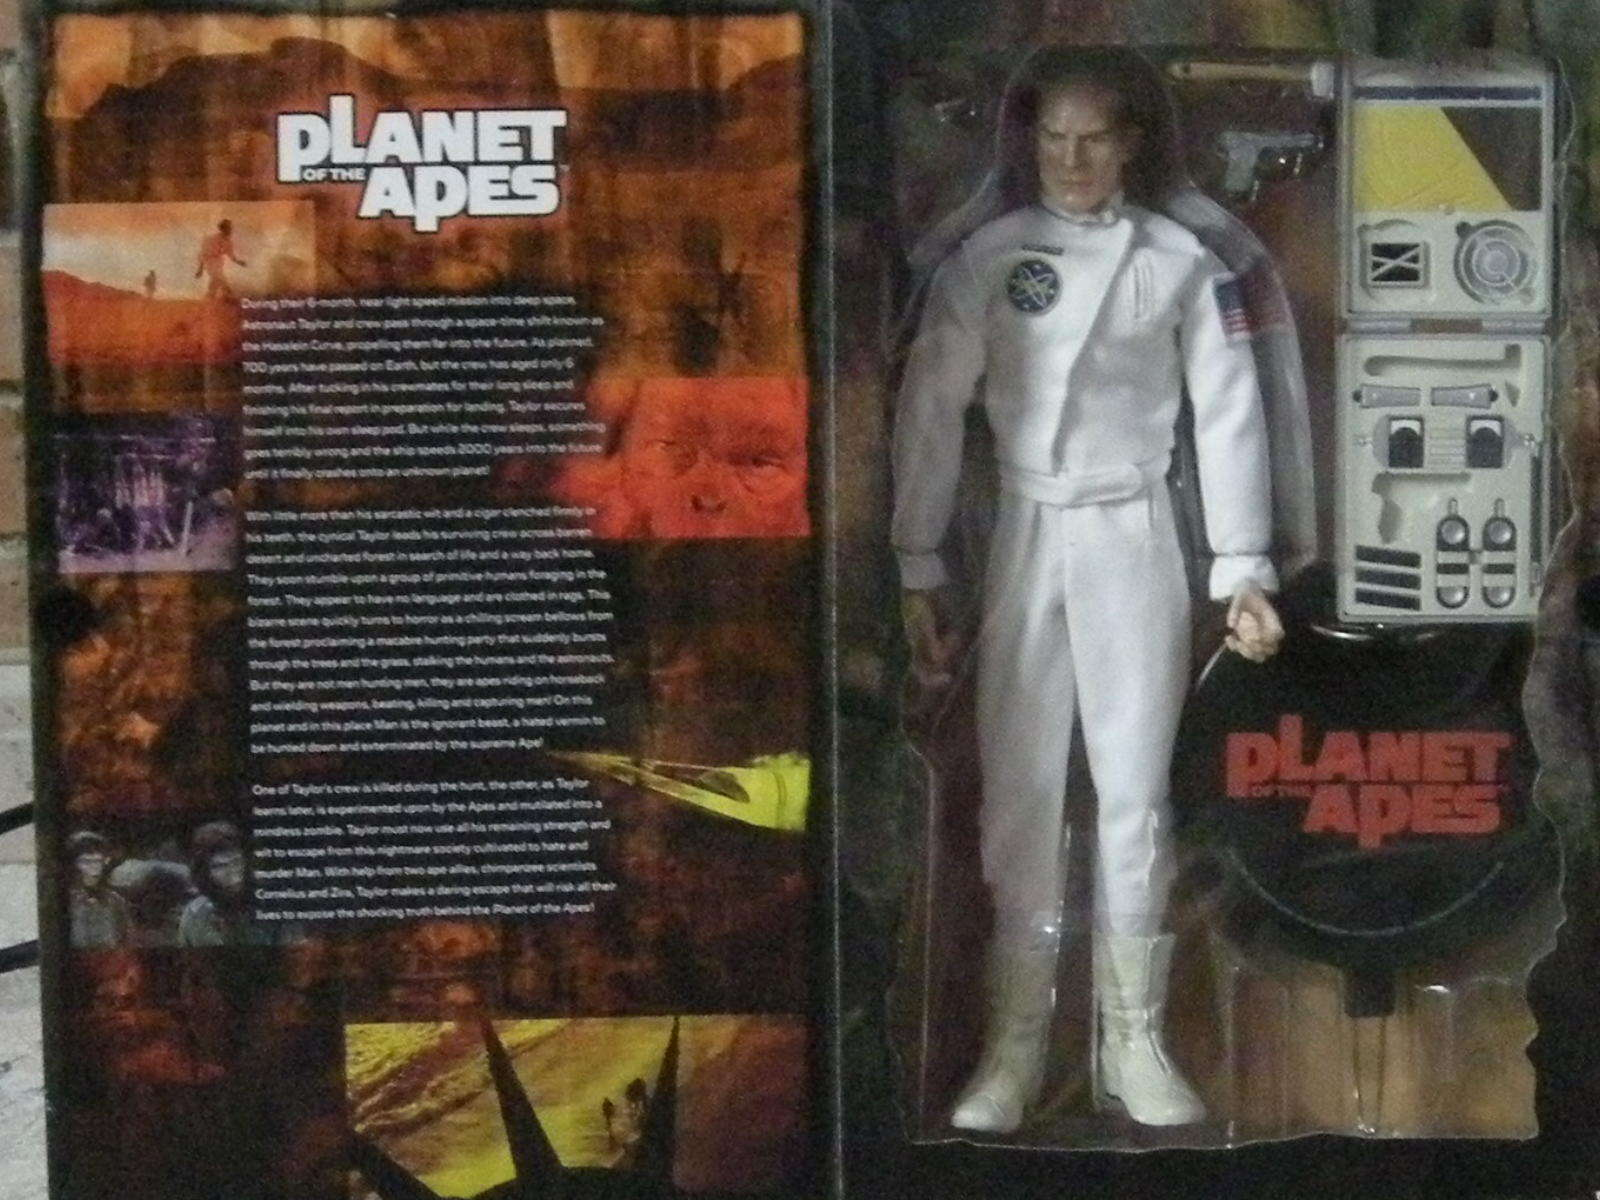 FIGURA PLANET OF THE APES PLANETA DE LOS SIMIOS  TAYLOR FIGURE NUEVA nouveau  nous fournissons le meilleur